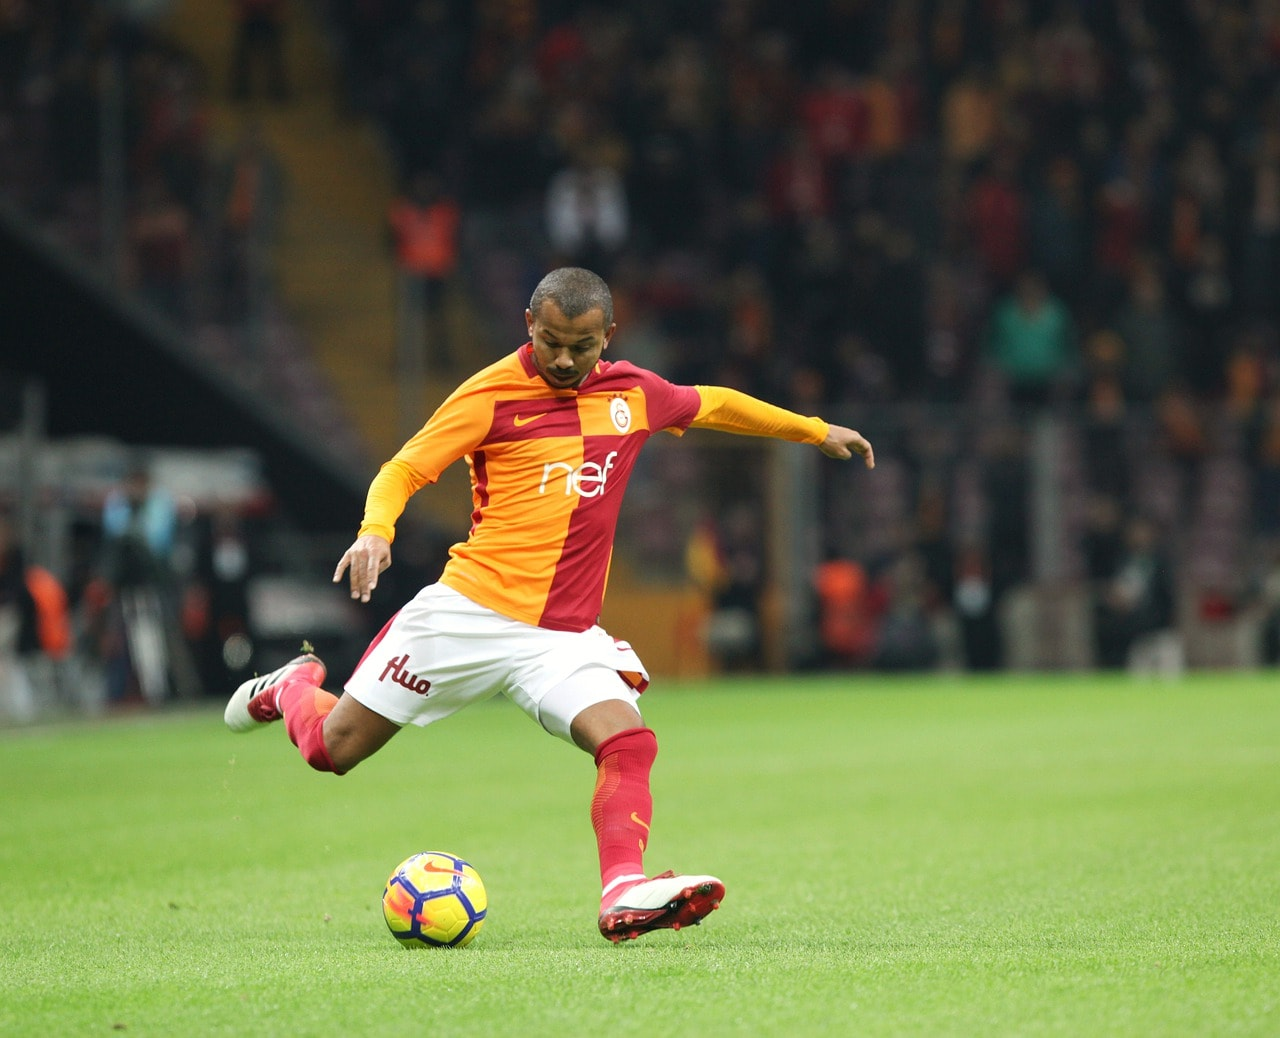 Mariano Ferreira Filho of Galatasaray playing at right back.